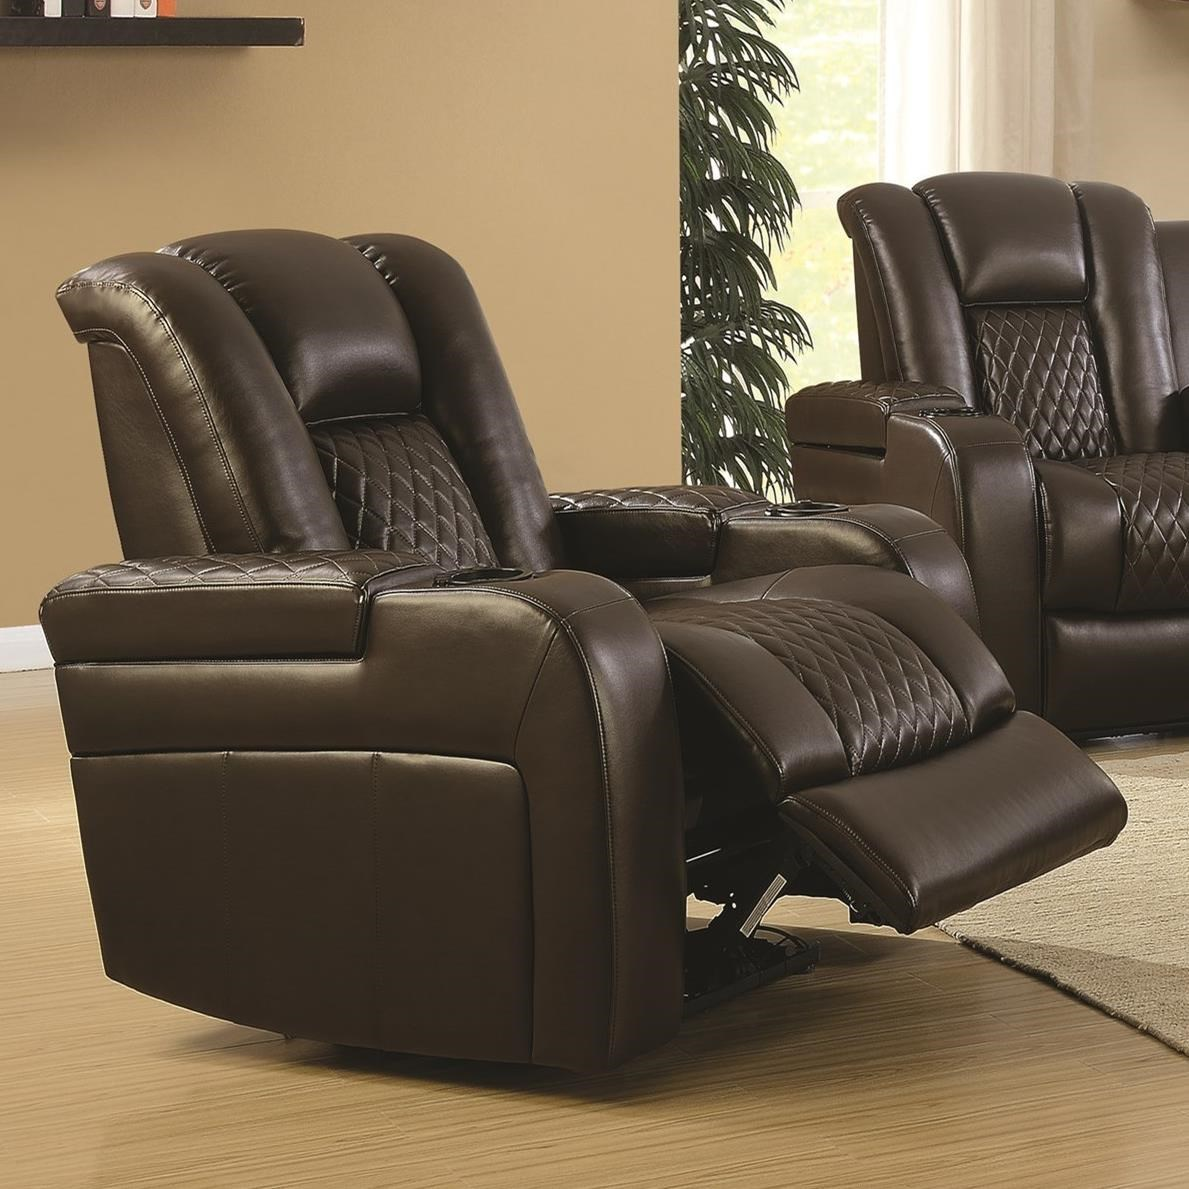 Exceptionnel Coaster Delangelo Casual Power Recliner With Cup Holders, Storage Console  And USB Port